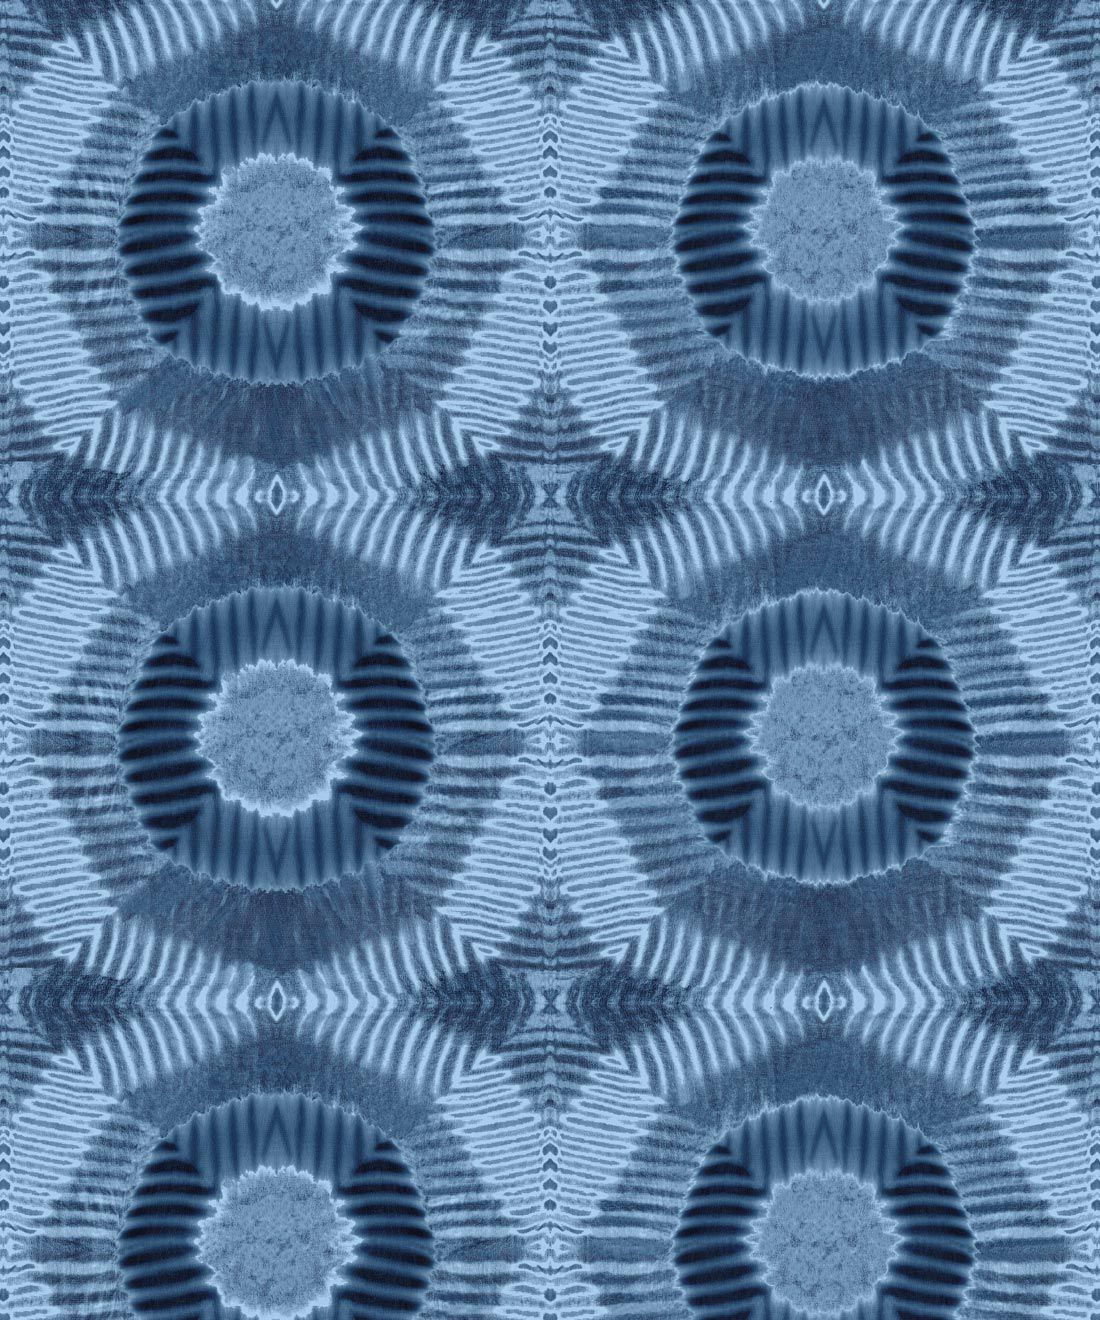 Aztec Suns Wallpaper Indigo Blue • Shibori Geometric • Swatch